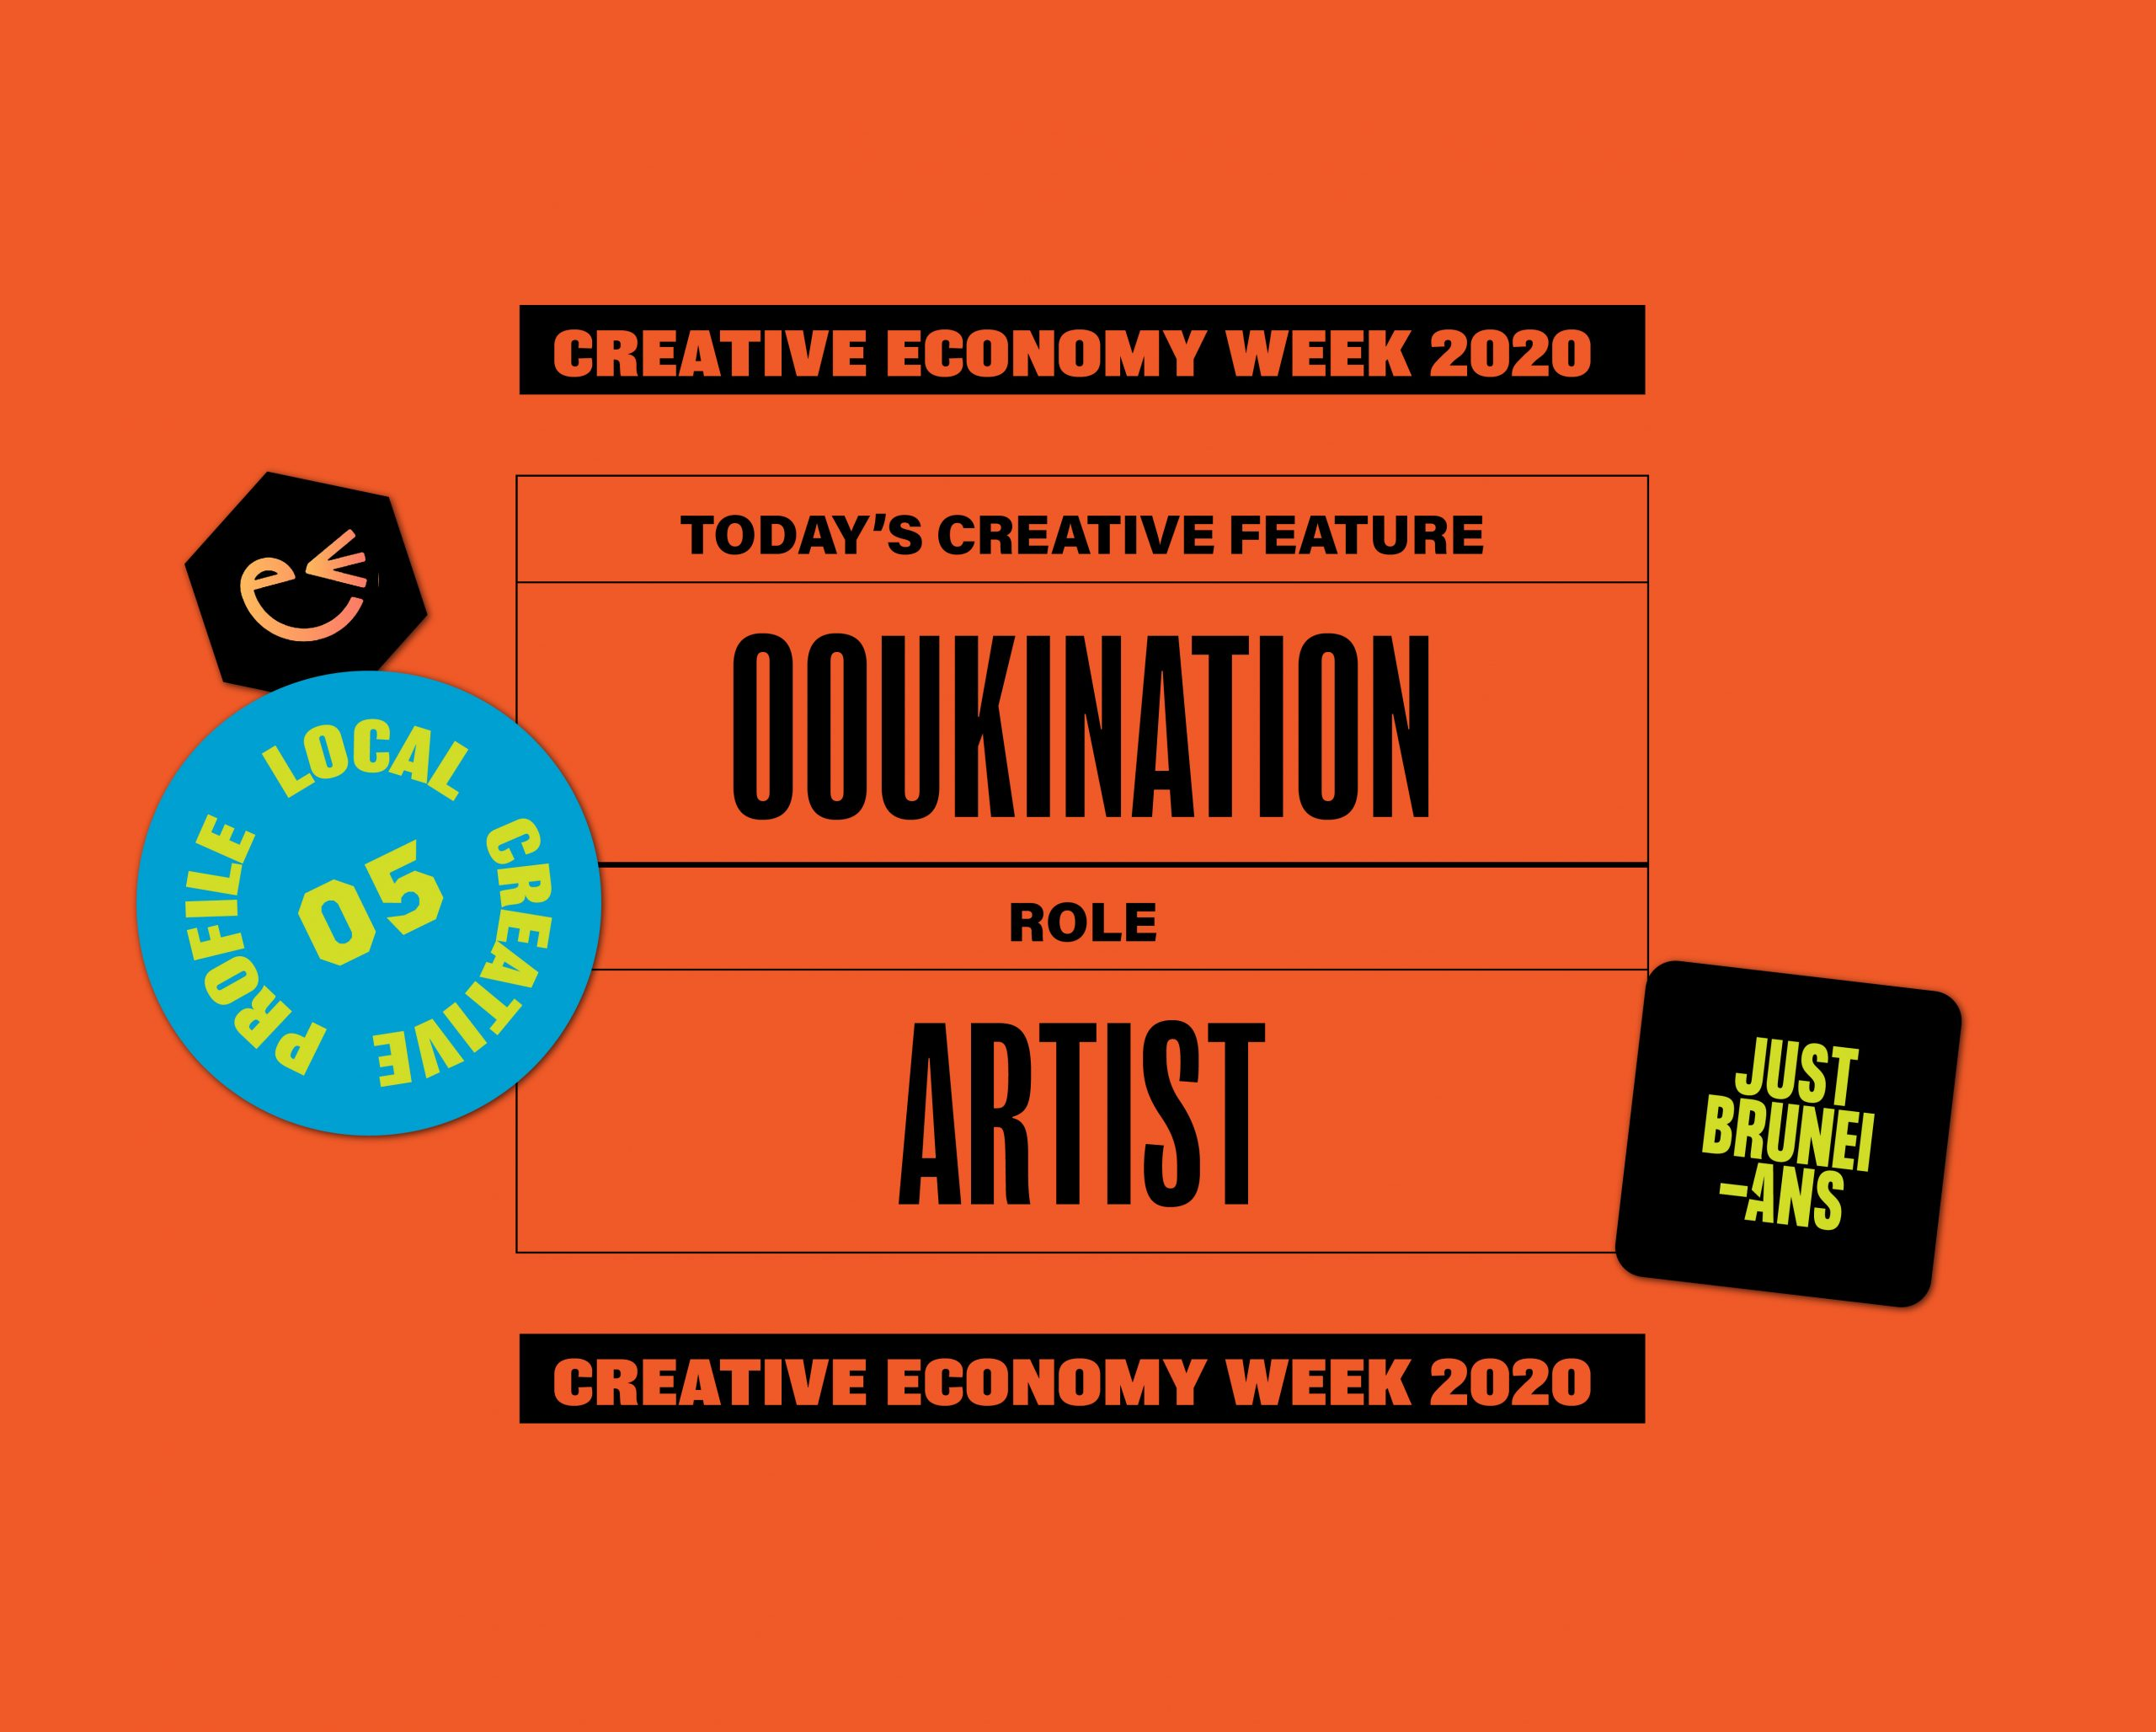 Today's Creative Feature: Ooukination | Creative Economy Week 2020